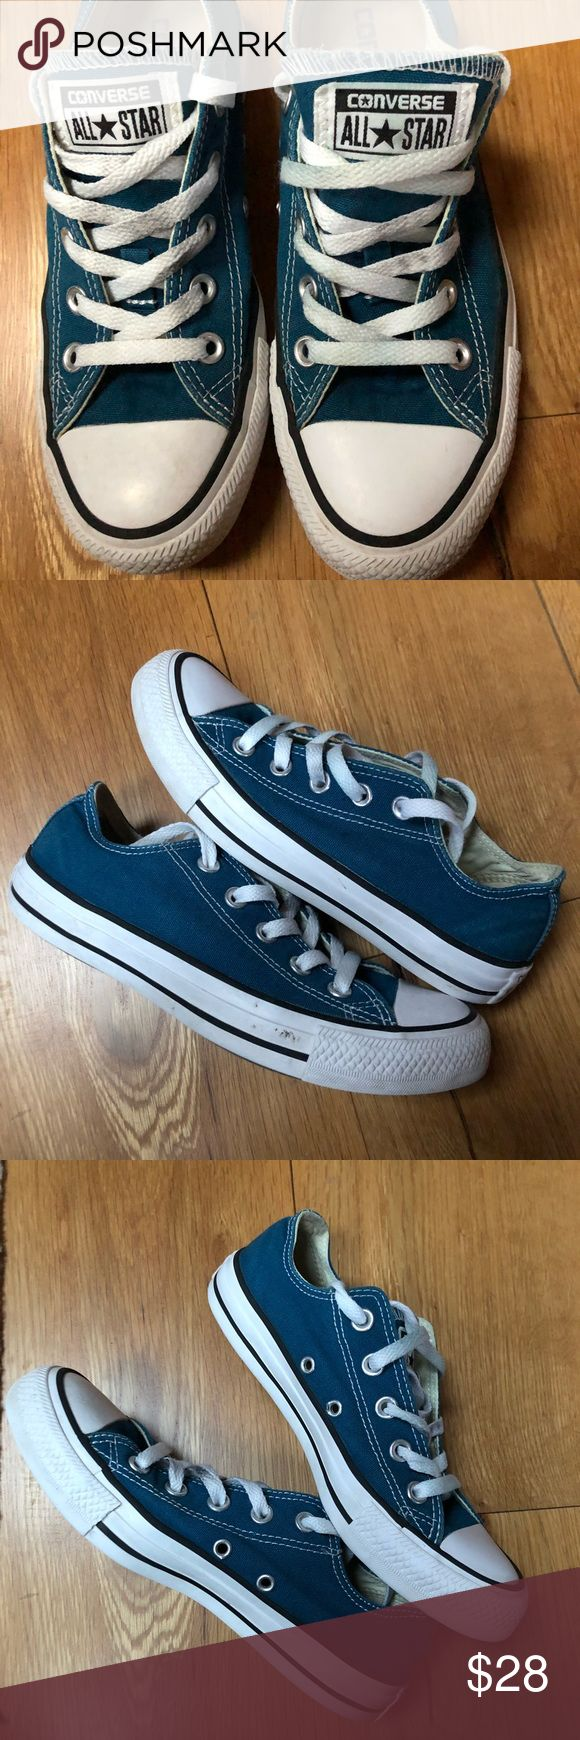 Converse All Stars low chuck taylors blue white Converse All Stars Chuck Taylors electric blue shoes. Unisex. Great used condition.  Shoes have been washed. See pictures for details. Color is a cobalt or royal blue. Women's 6  Men's size 4 Converse Shoes Sneakers